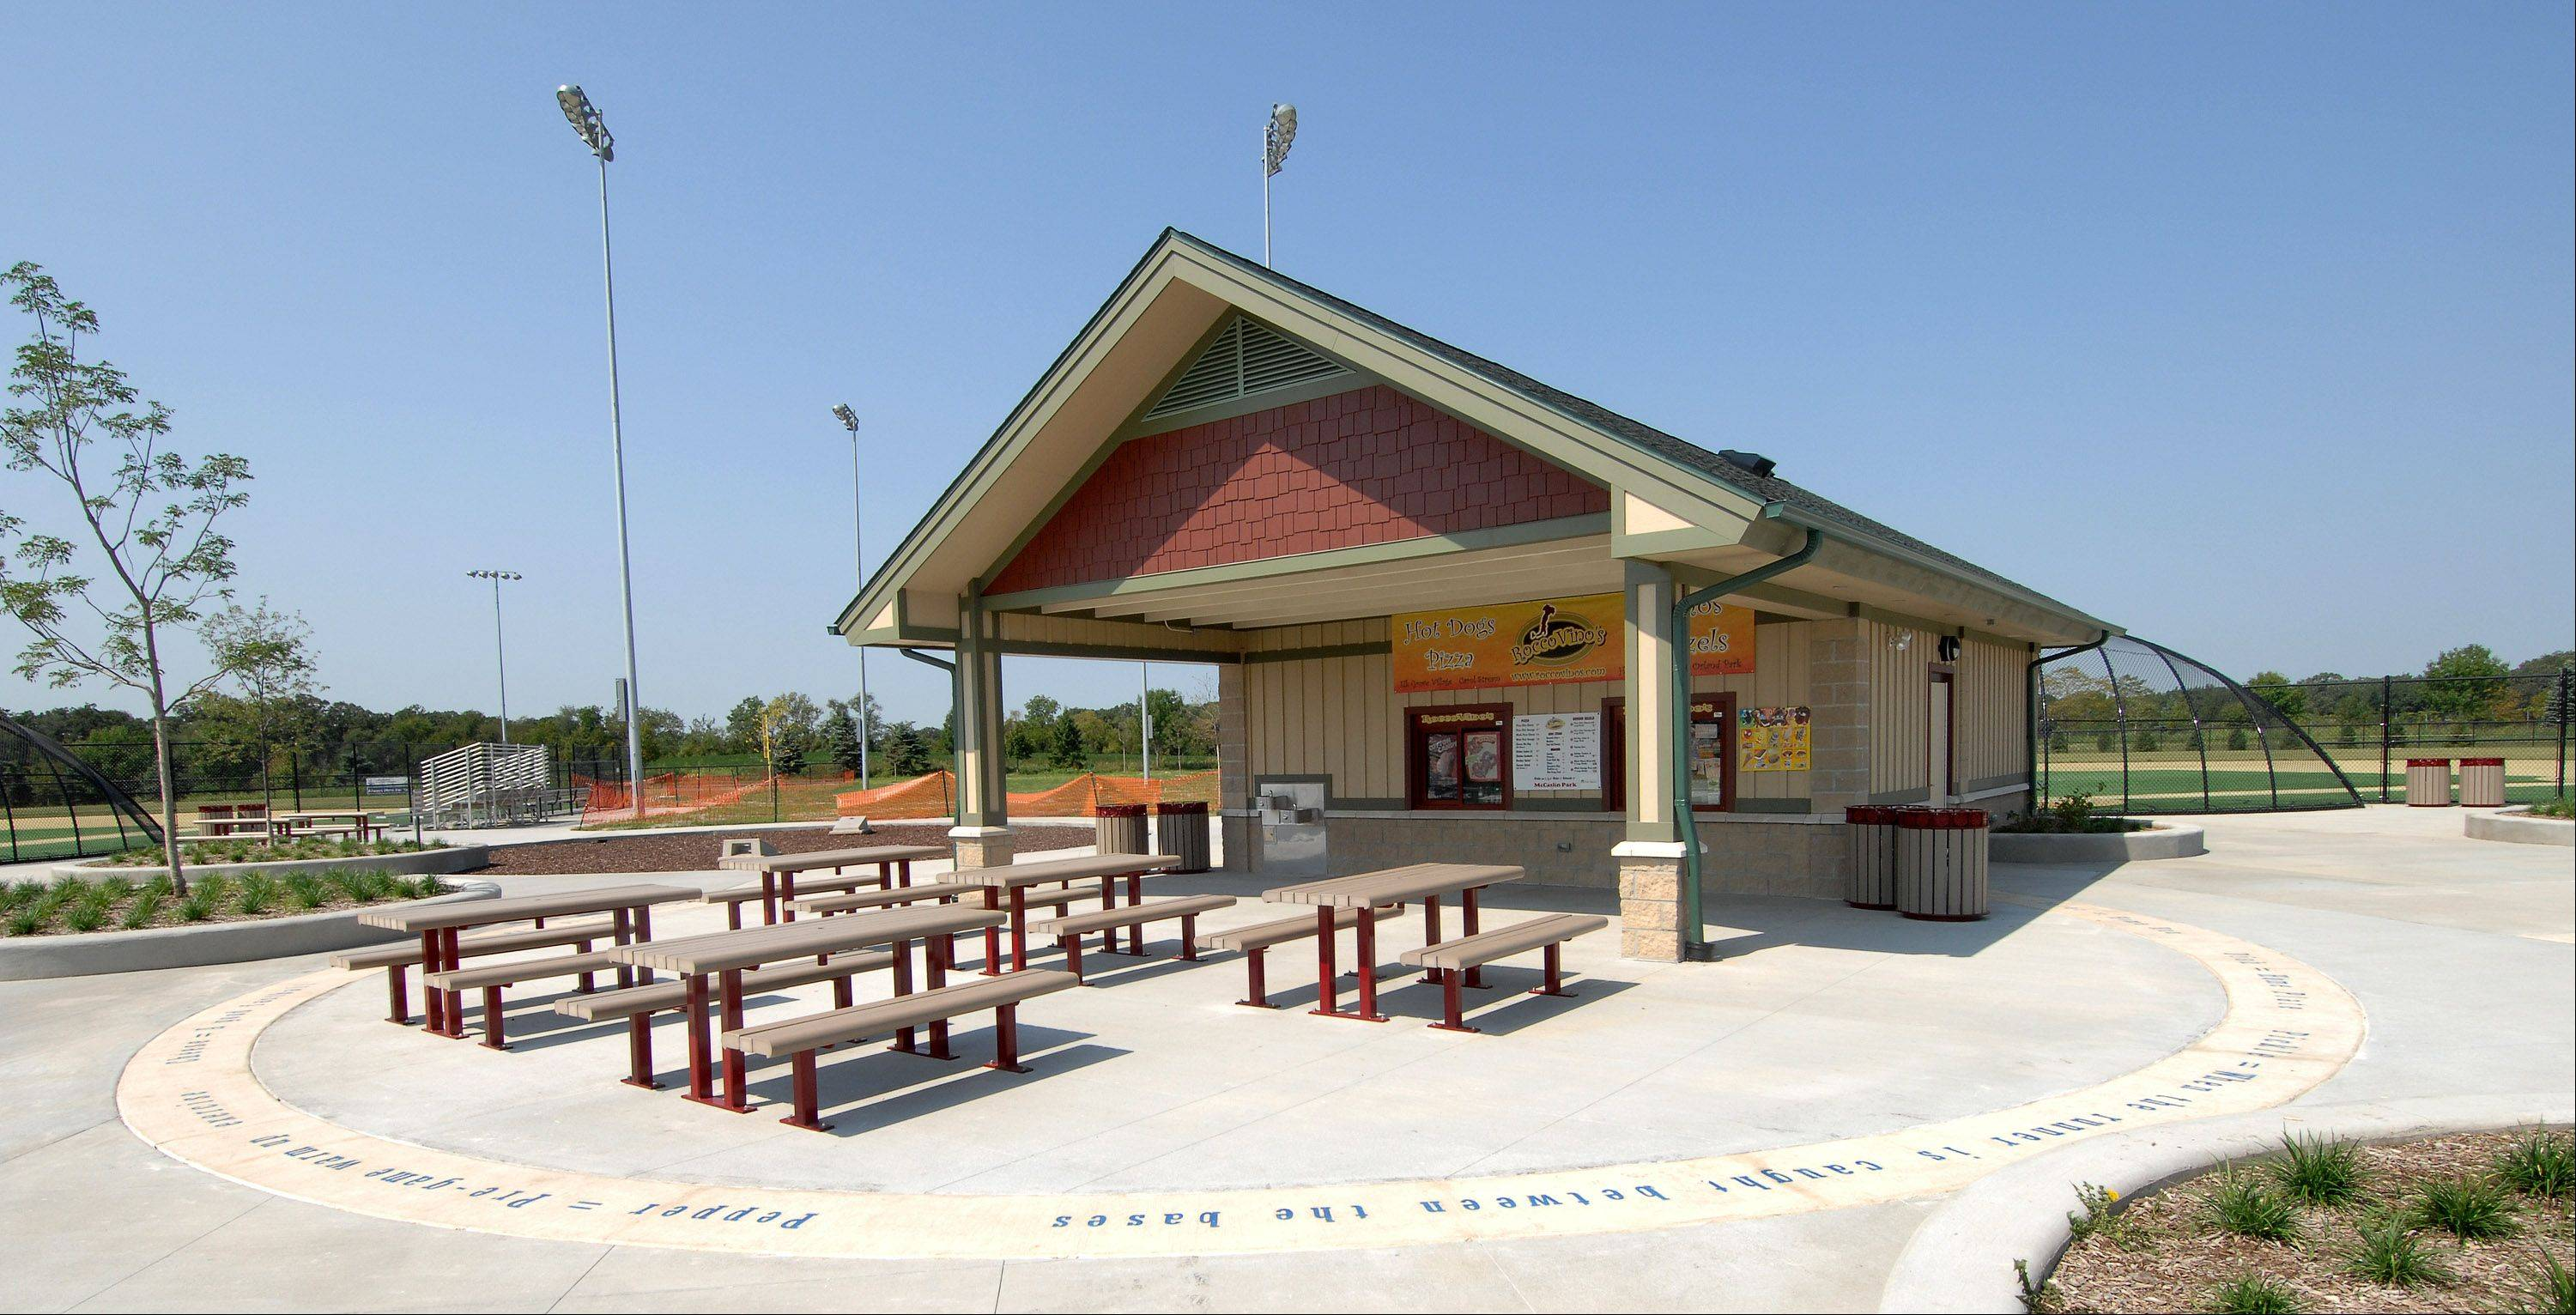 The Carol Stream Park District is considering whether to allow the sale of alcohol at its concession stand at McCaslin Park. Officials are also considering allowing alcohol sales during rental events at the new Fountain View Recreation Center.